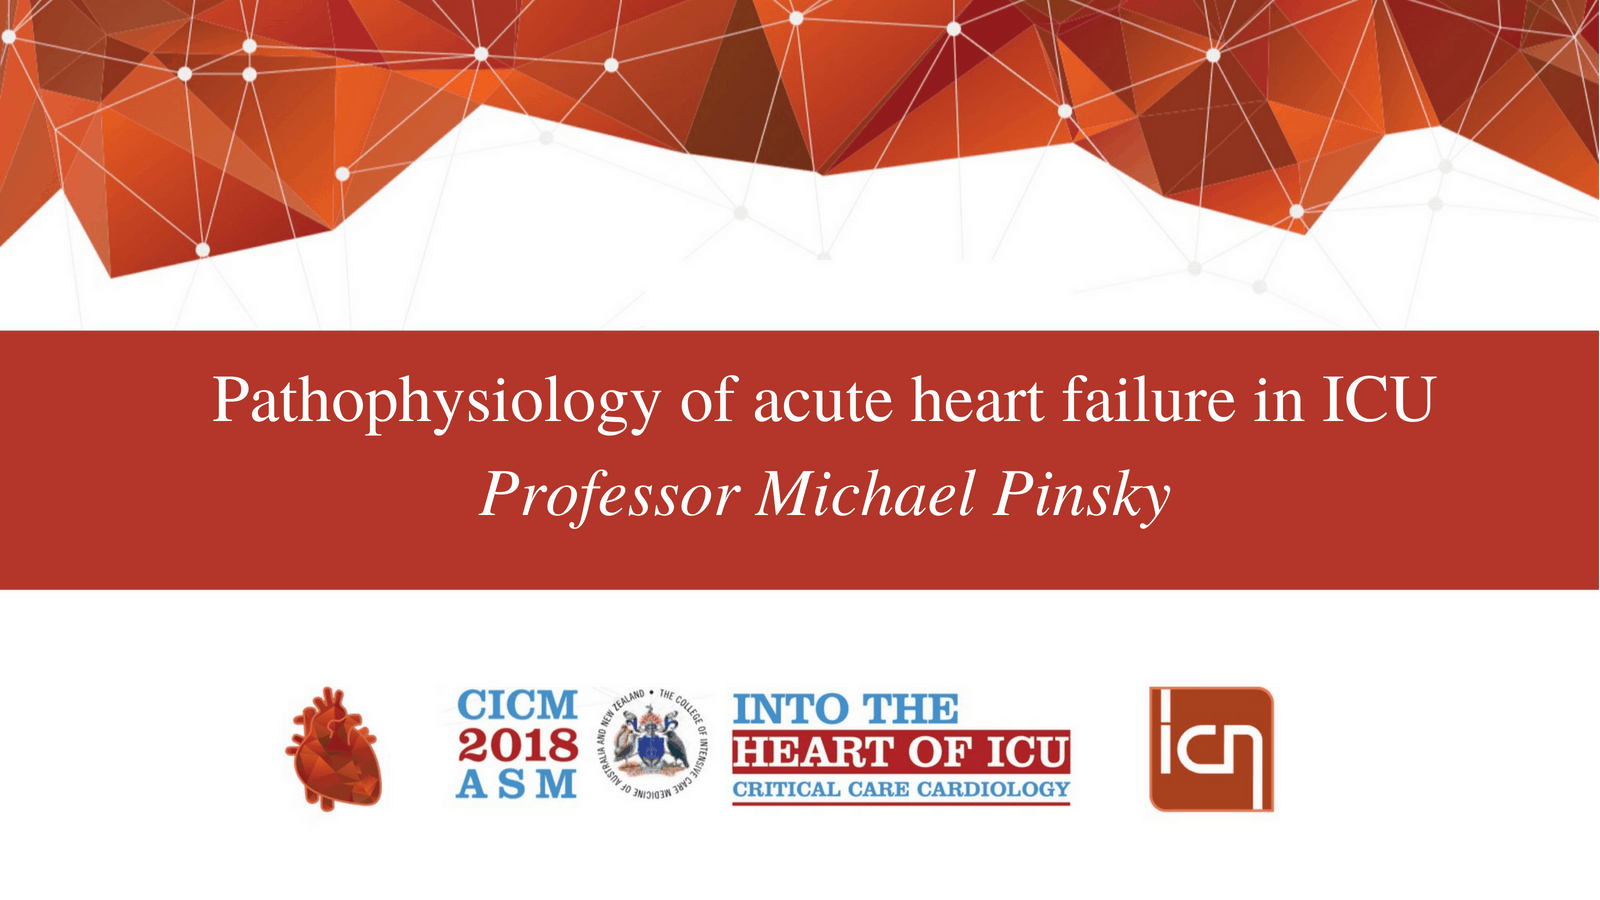 Pathophysiology of acute heart failure in ICU by Professor Michael Pinsky